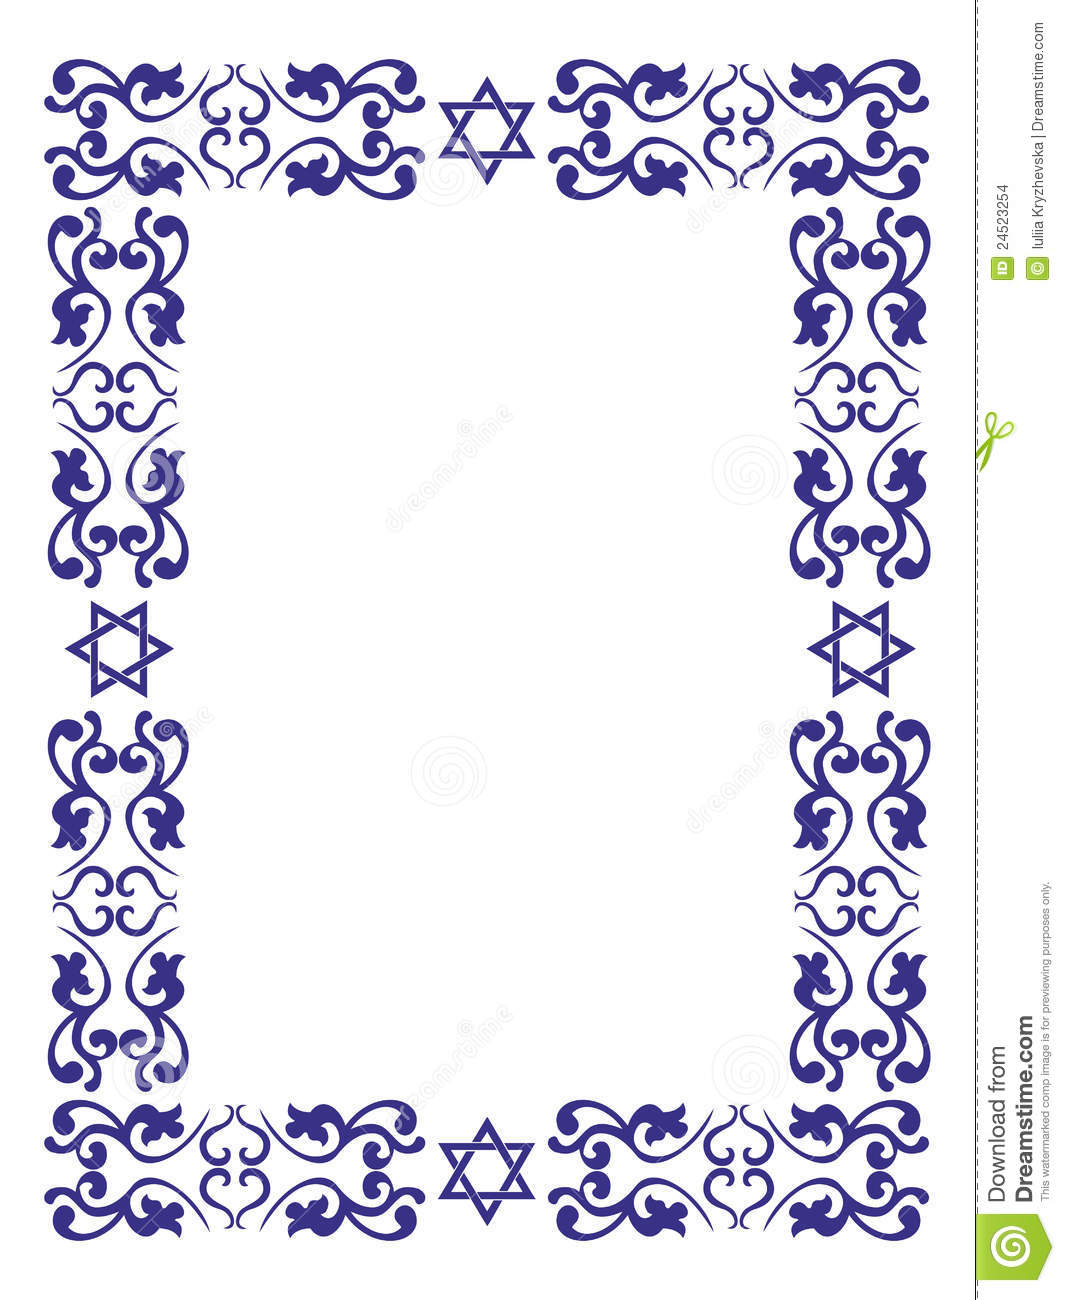 jewish floral border with david star stock vector image first holy communion clip art free download first holy communion clip art images